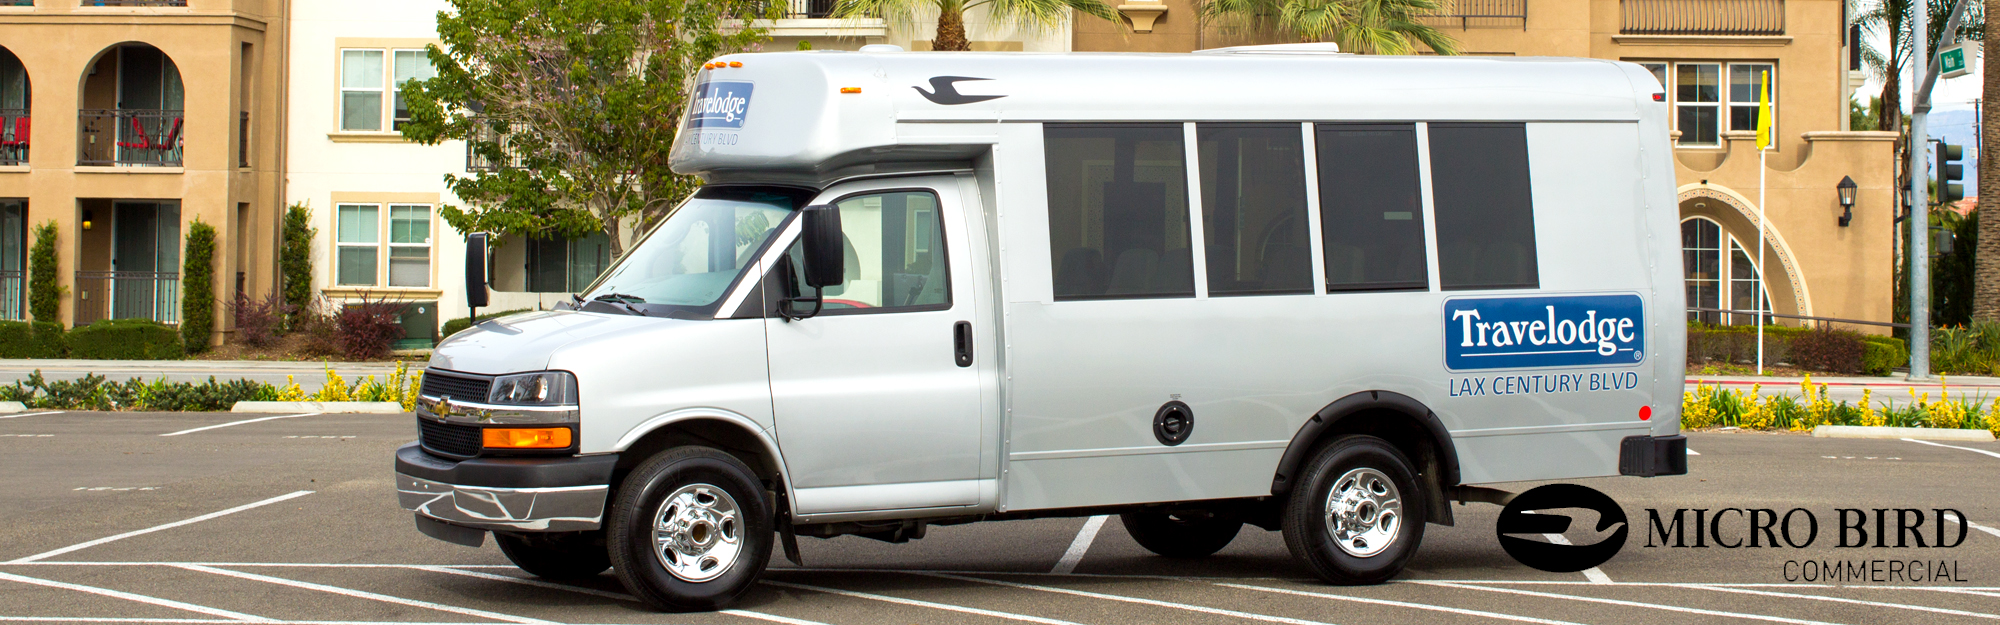 Micro Bird Shuttle Bus Header Image